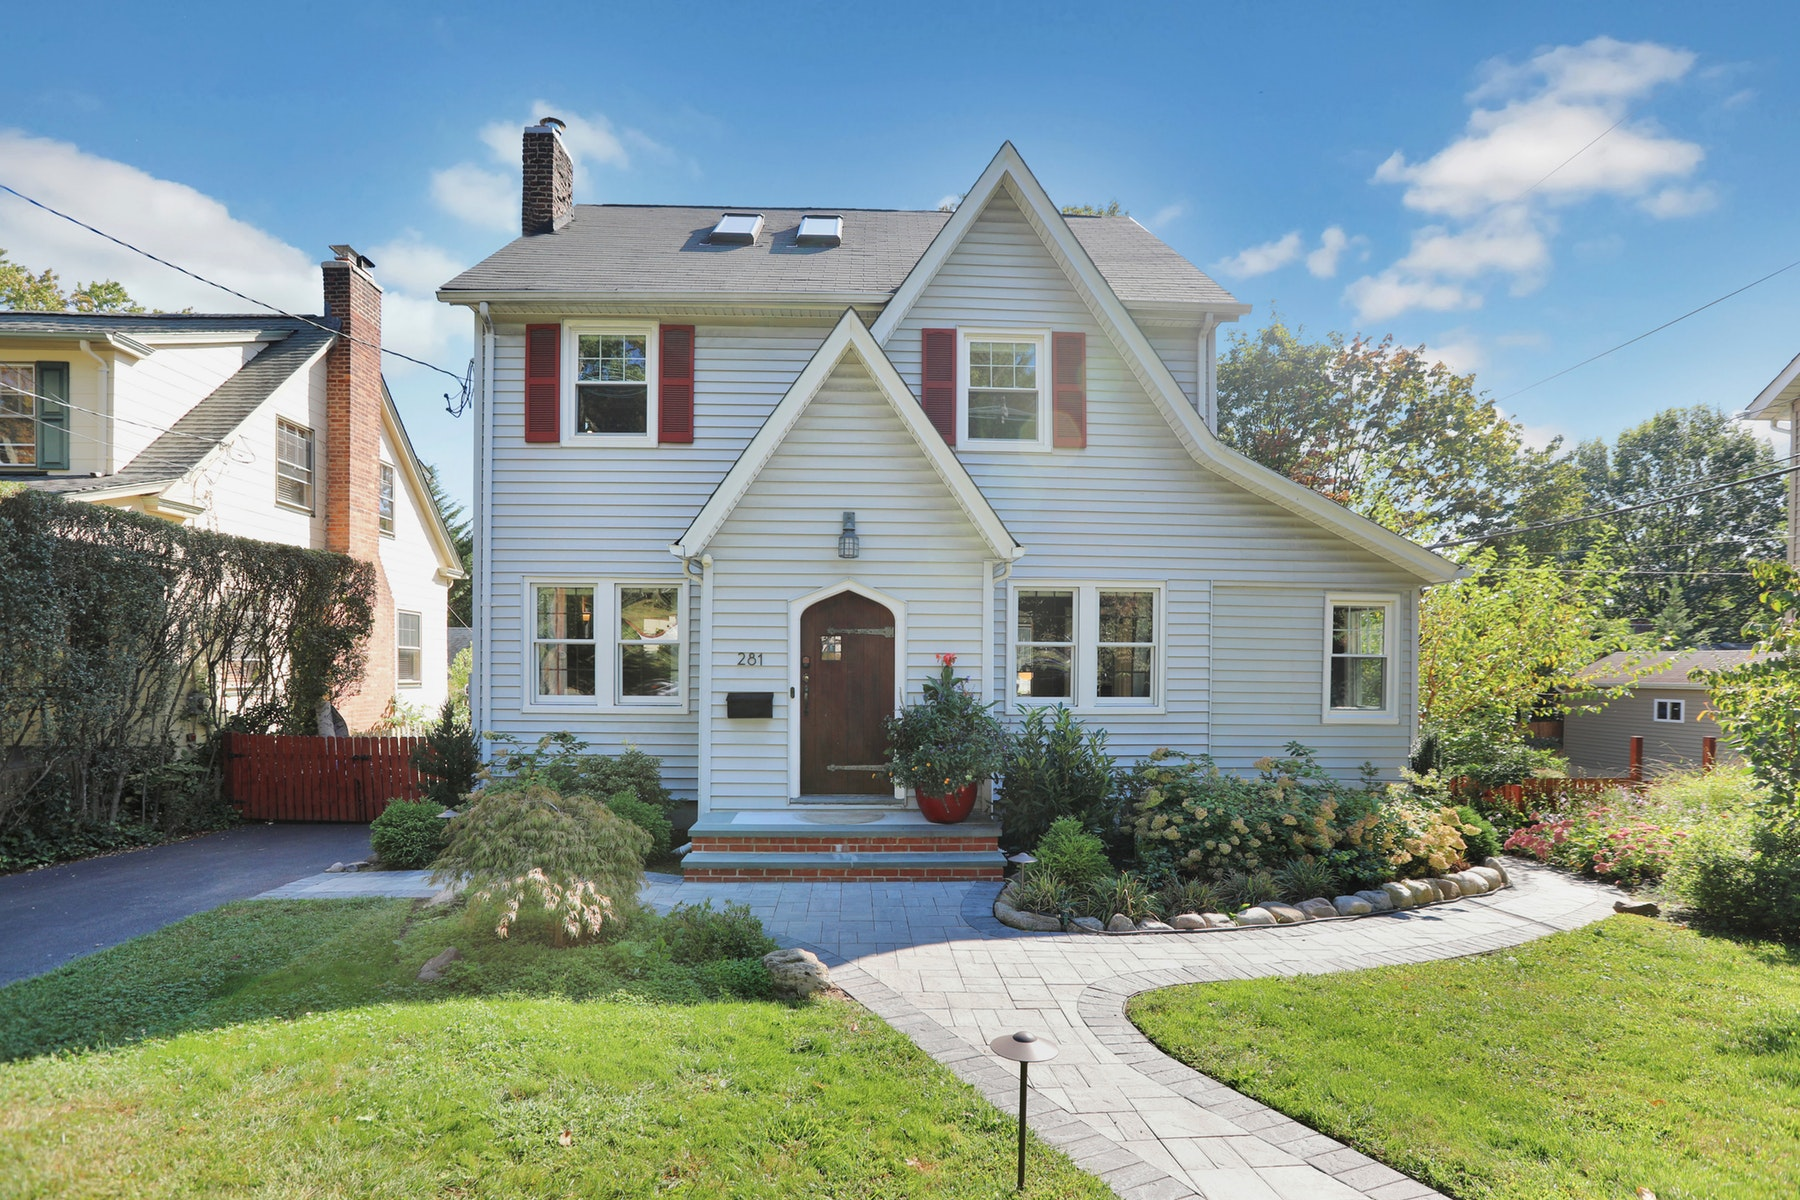 Single Family Homes for Active at Renovated Colonial! 281 Grove St. Montclair, New Jersey 07042 United States